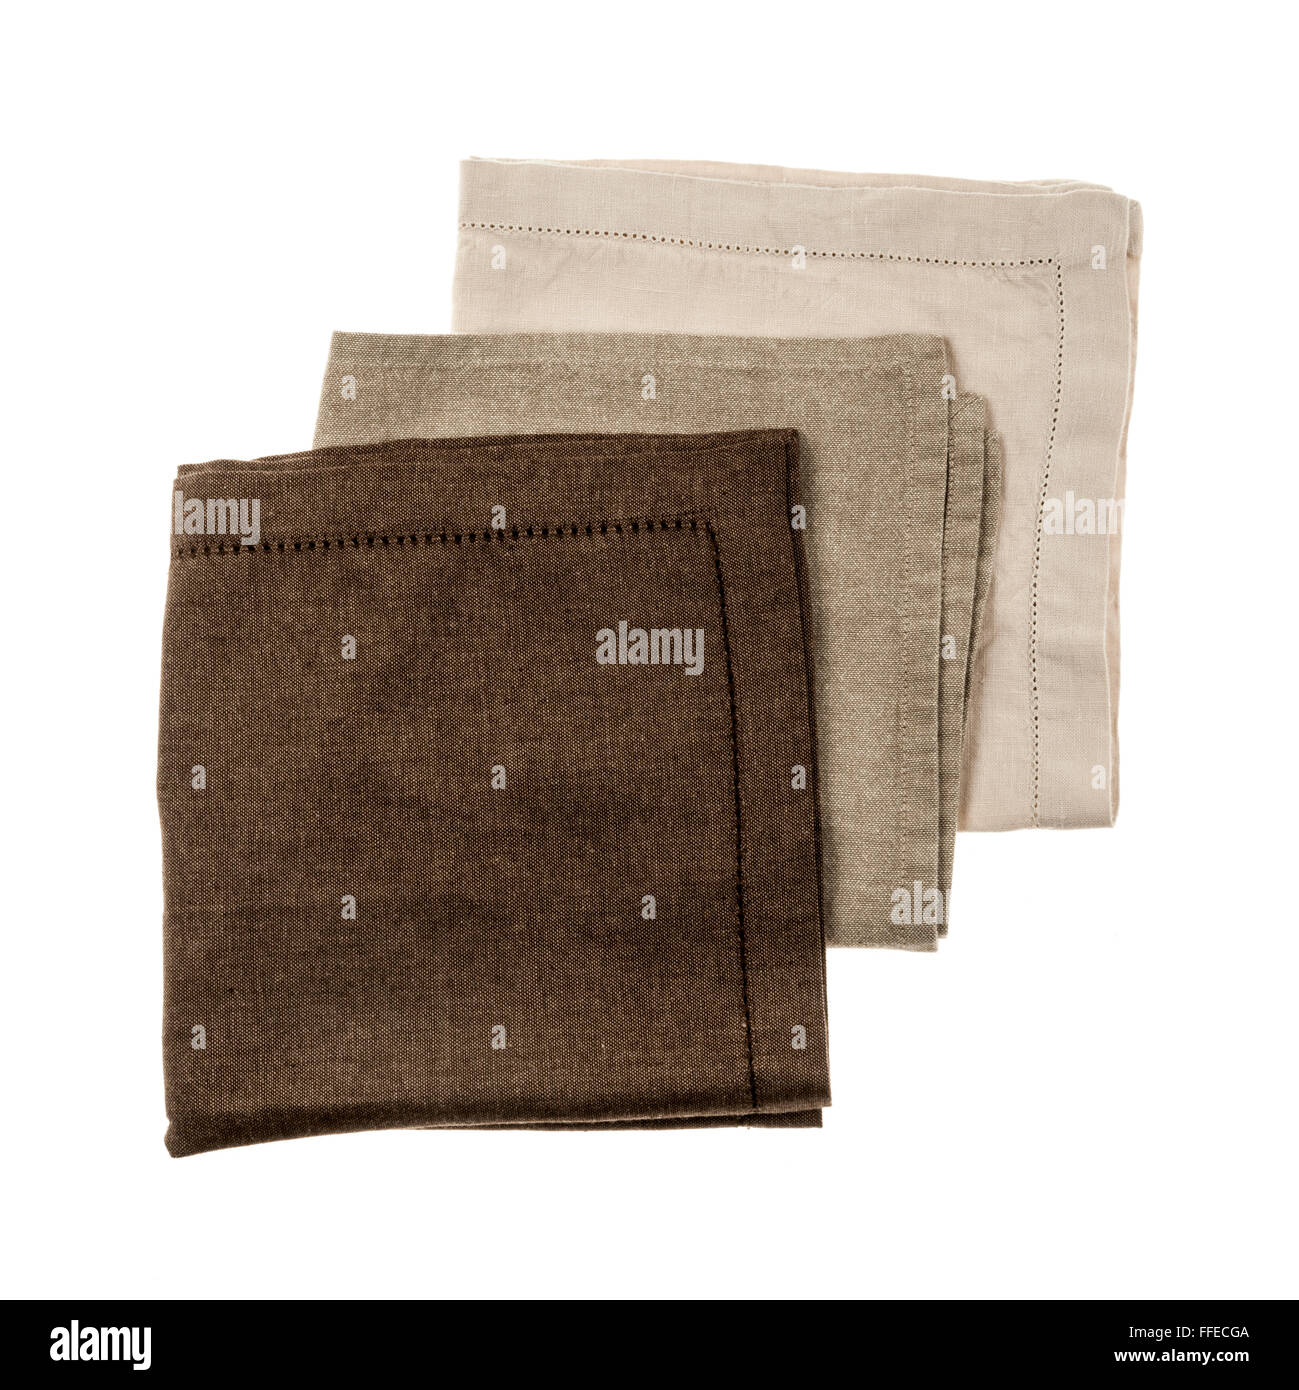 Linen cloth napkins in brown and beige natural colors isolated on white background - Stock Image